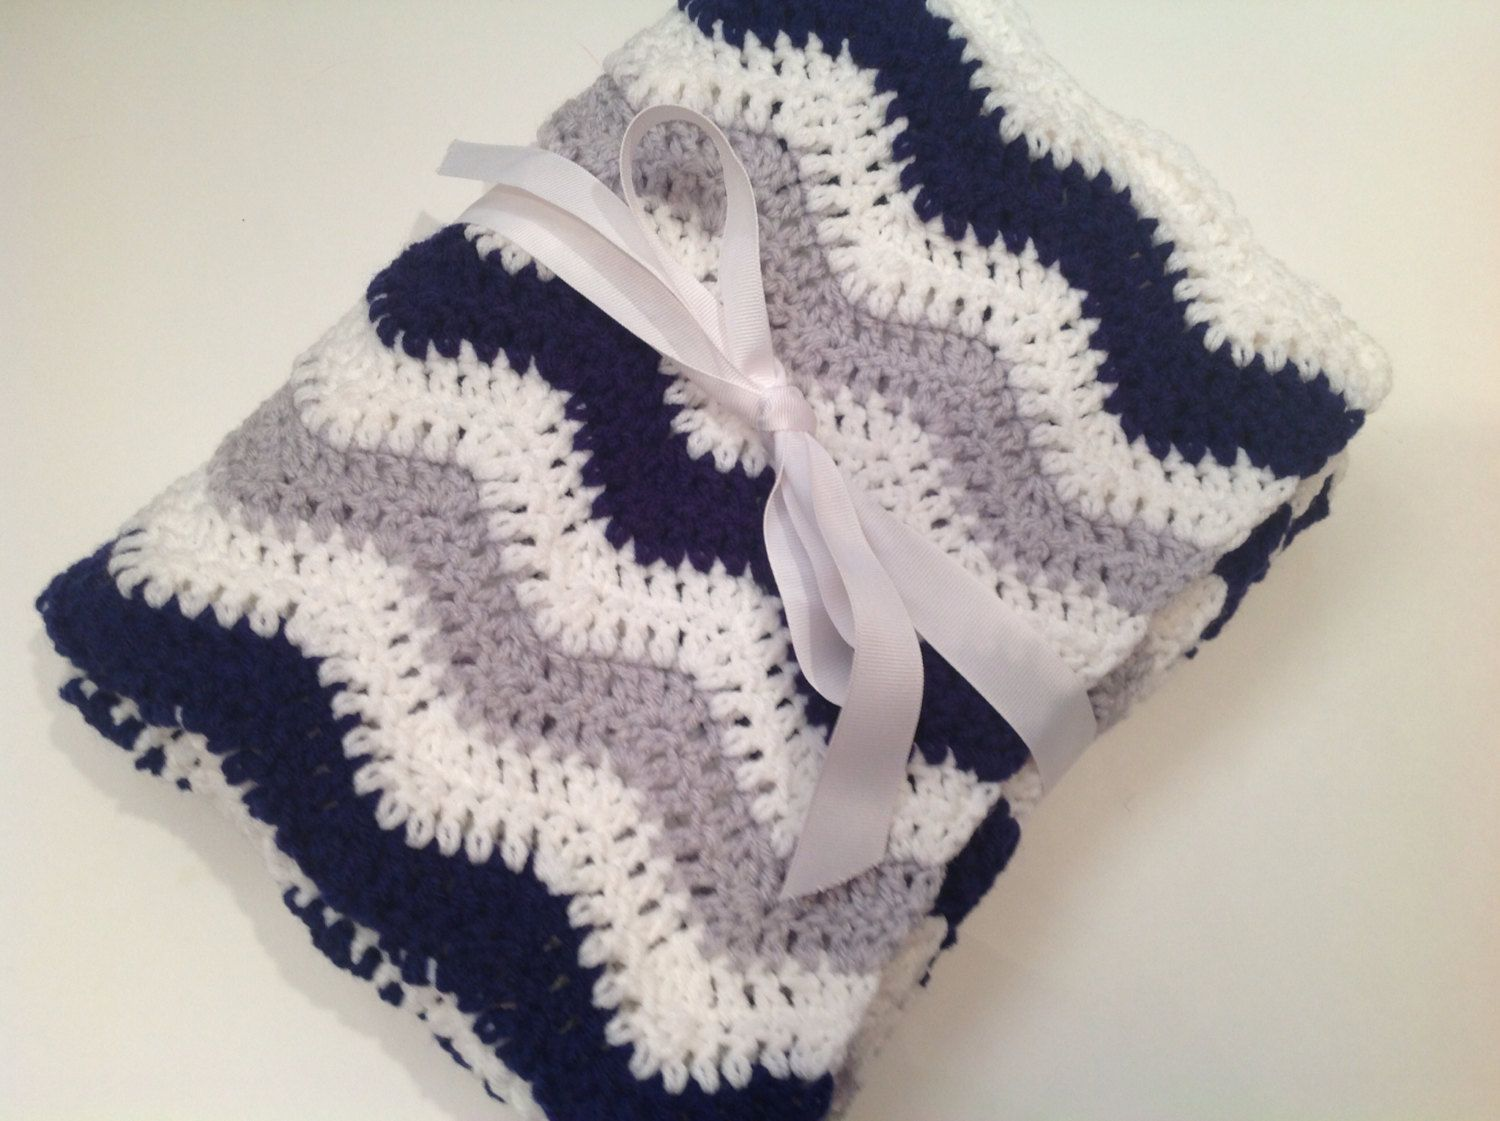 SALE+Baby+blanket+crochet+light+gray+navy+blue+white+by+KK13,+$20.00 ...